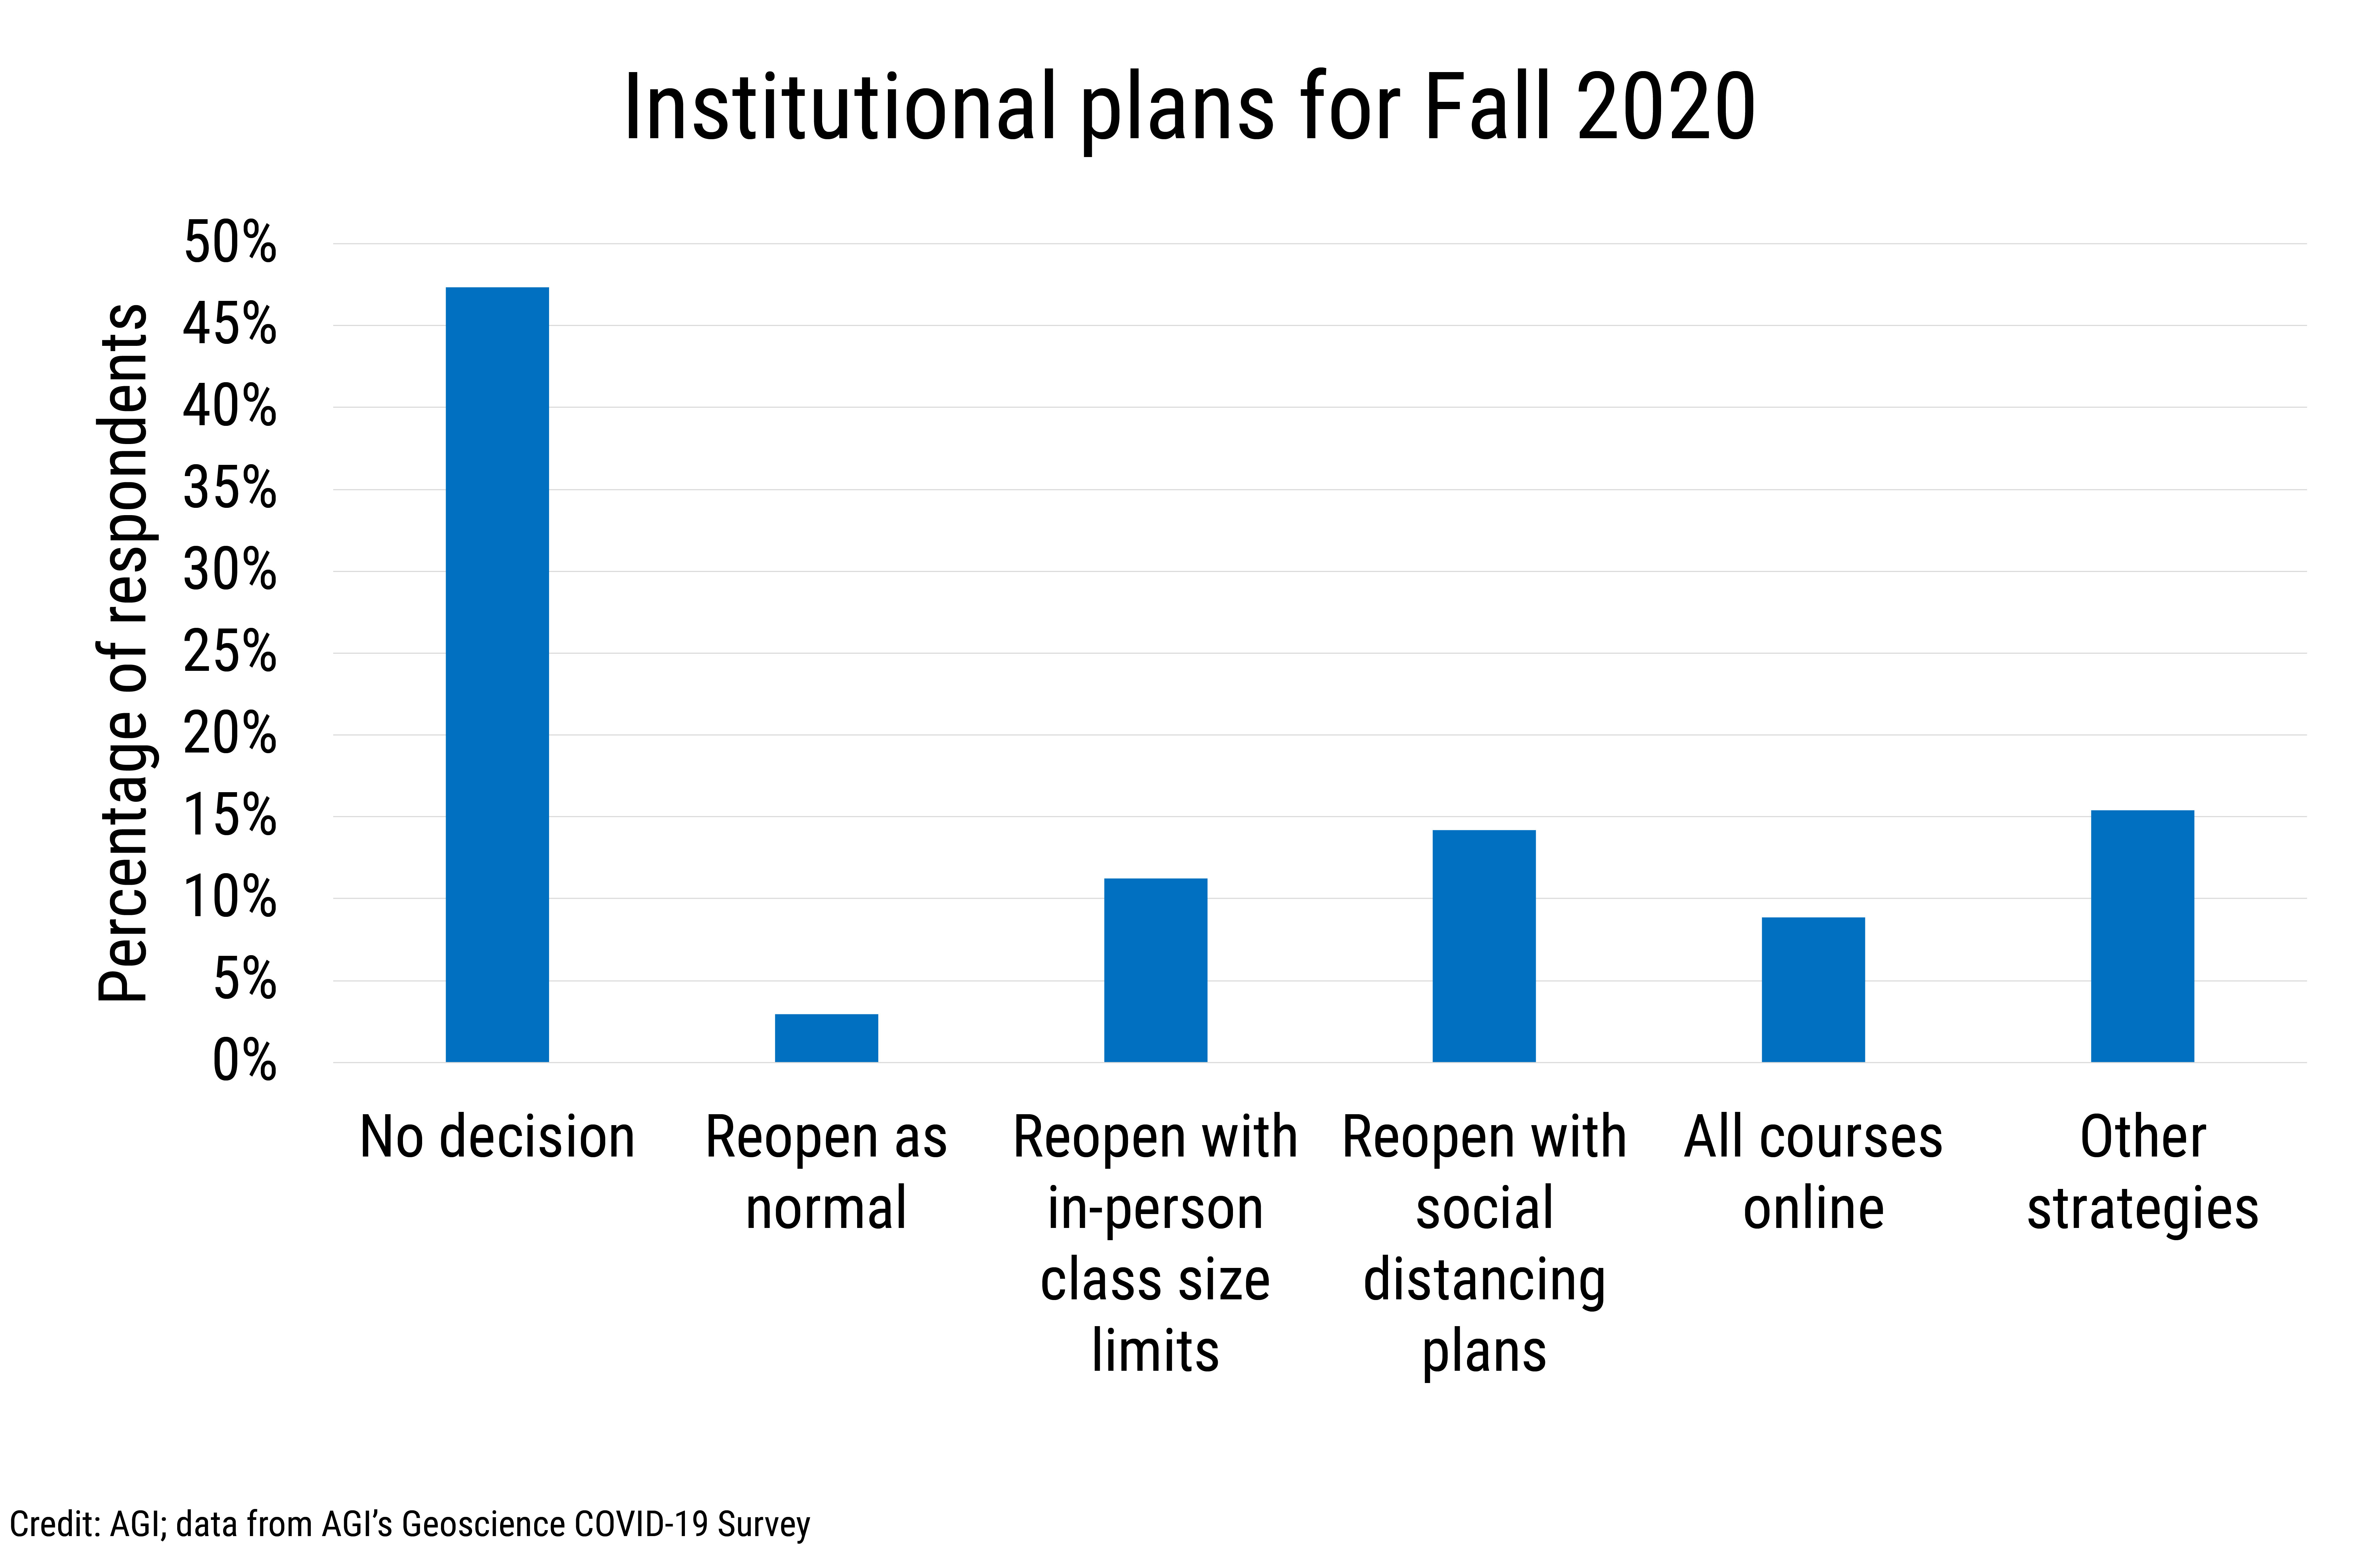 Data Brief 2020-007 chart 03: Institutional plans for Fall 2020 (credit: AGI)